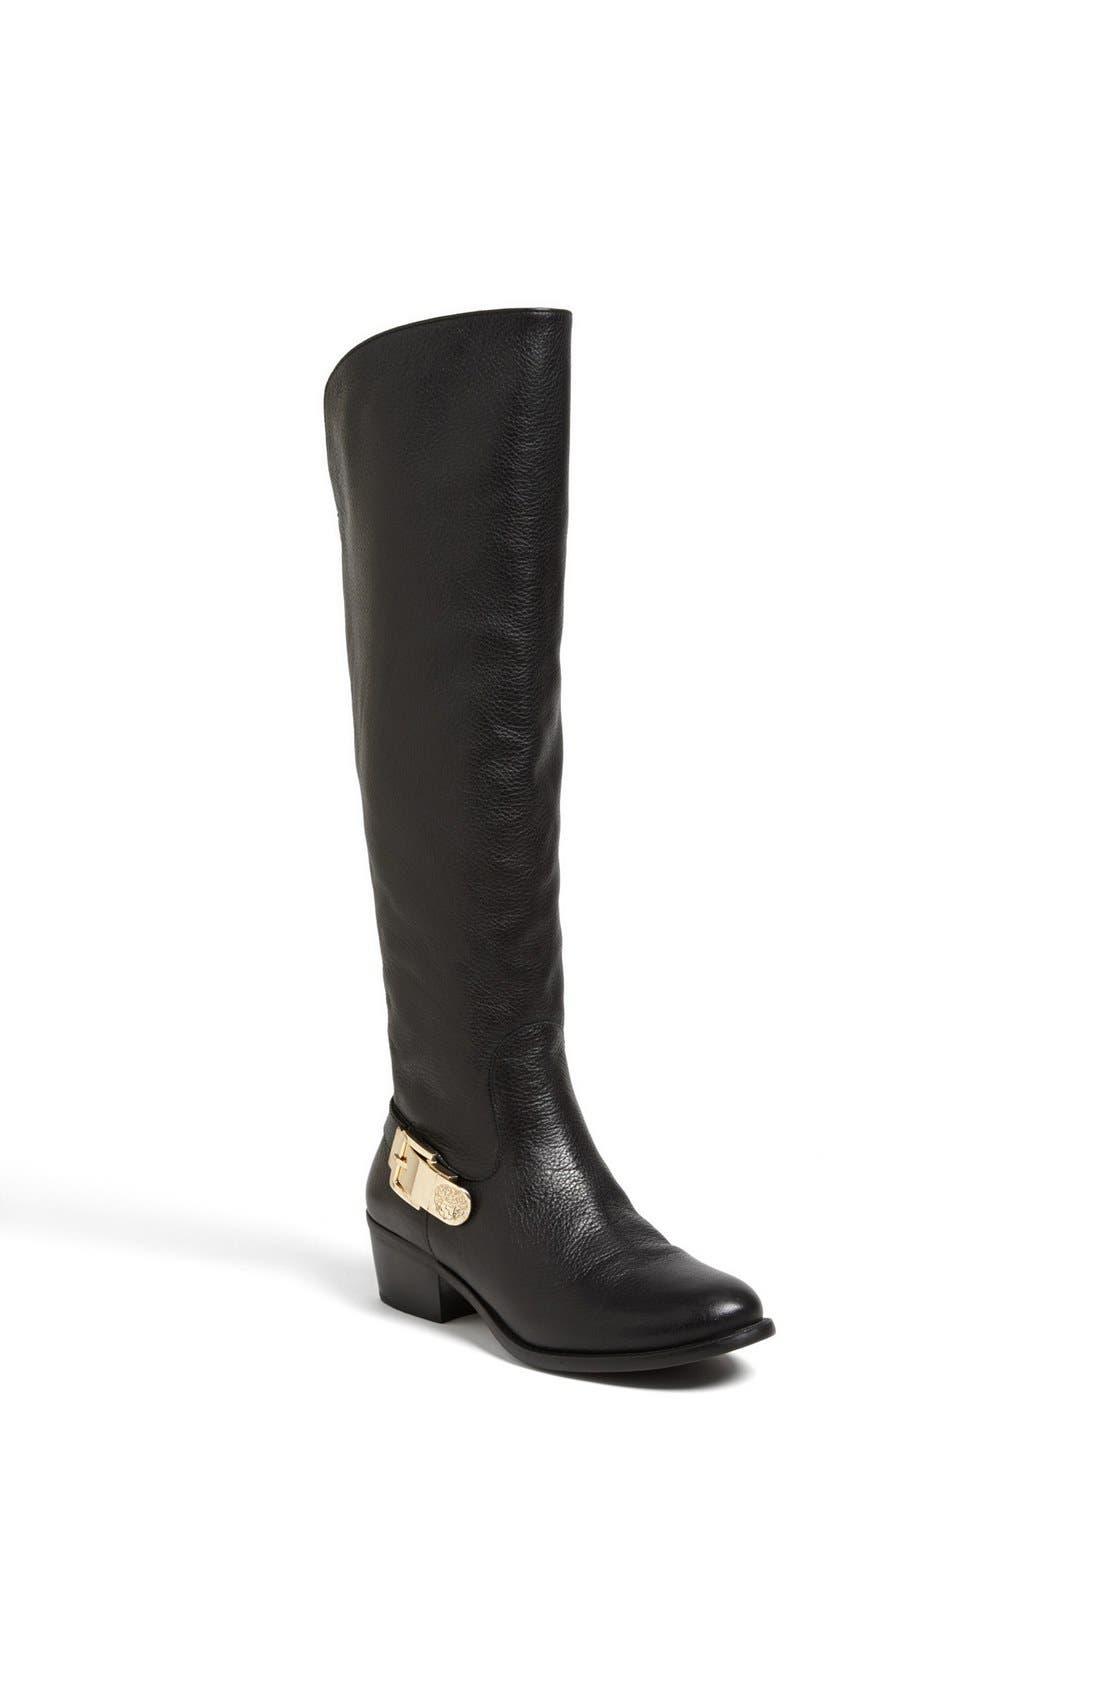 Main Image - Vince Camuto 'Bedina' Over the Knee Boot